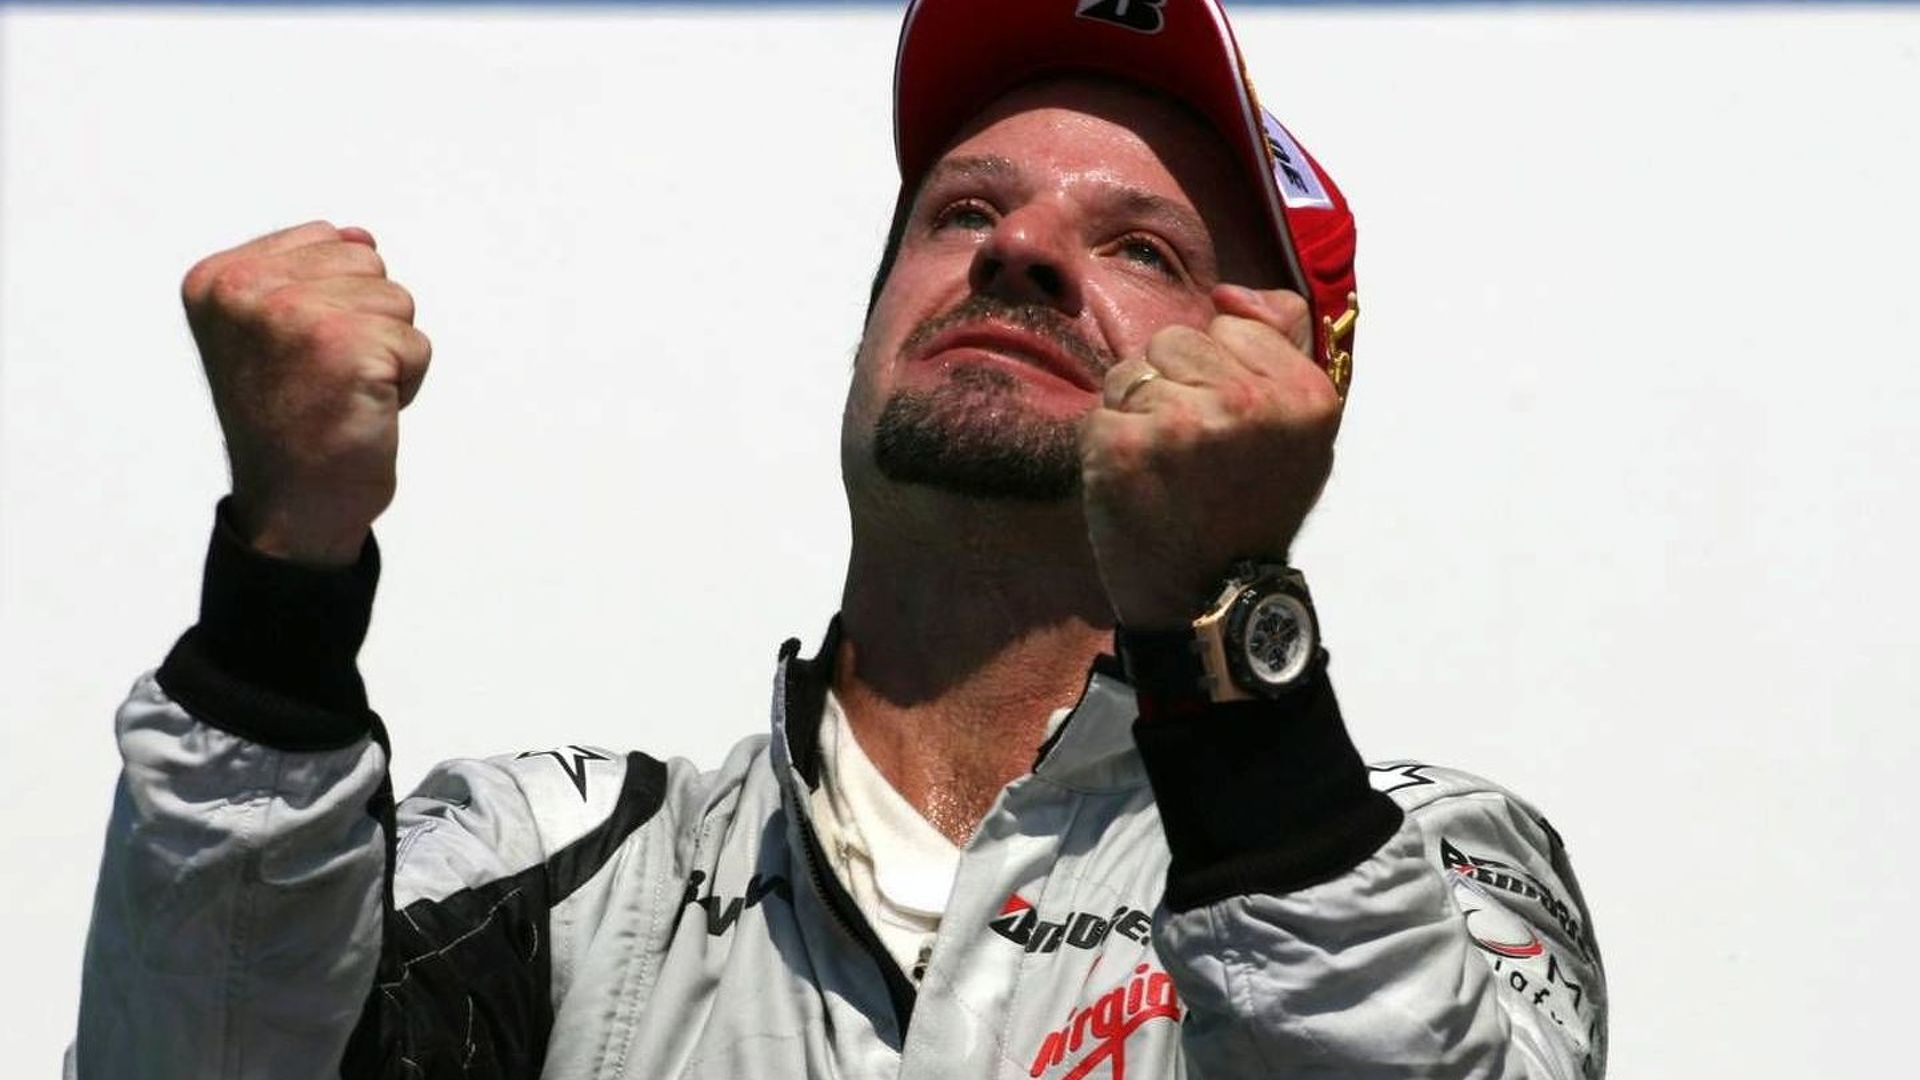 Barrichello's Williams switch not decided yet